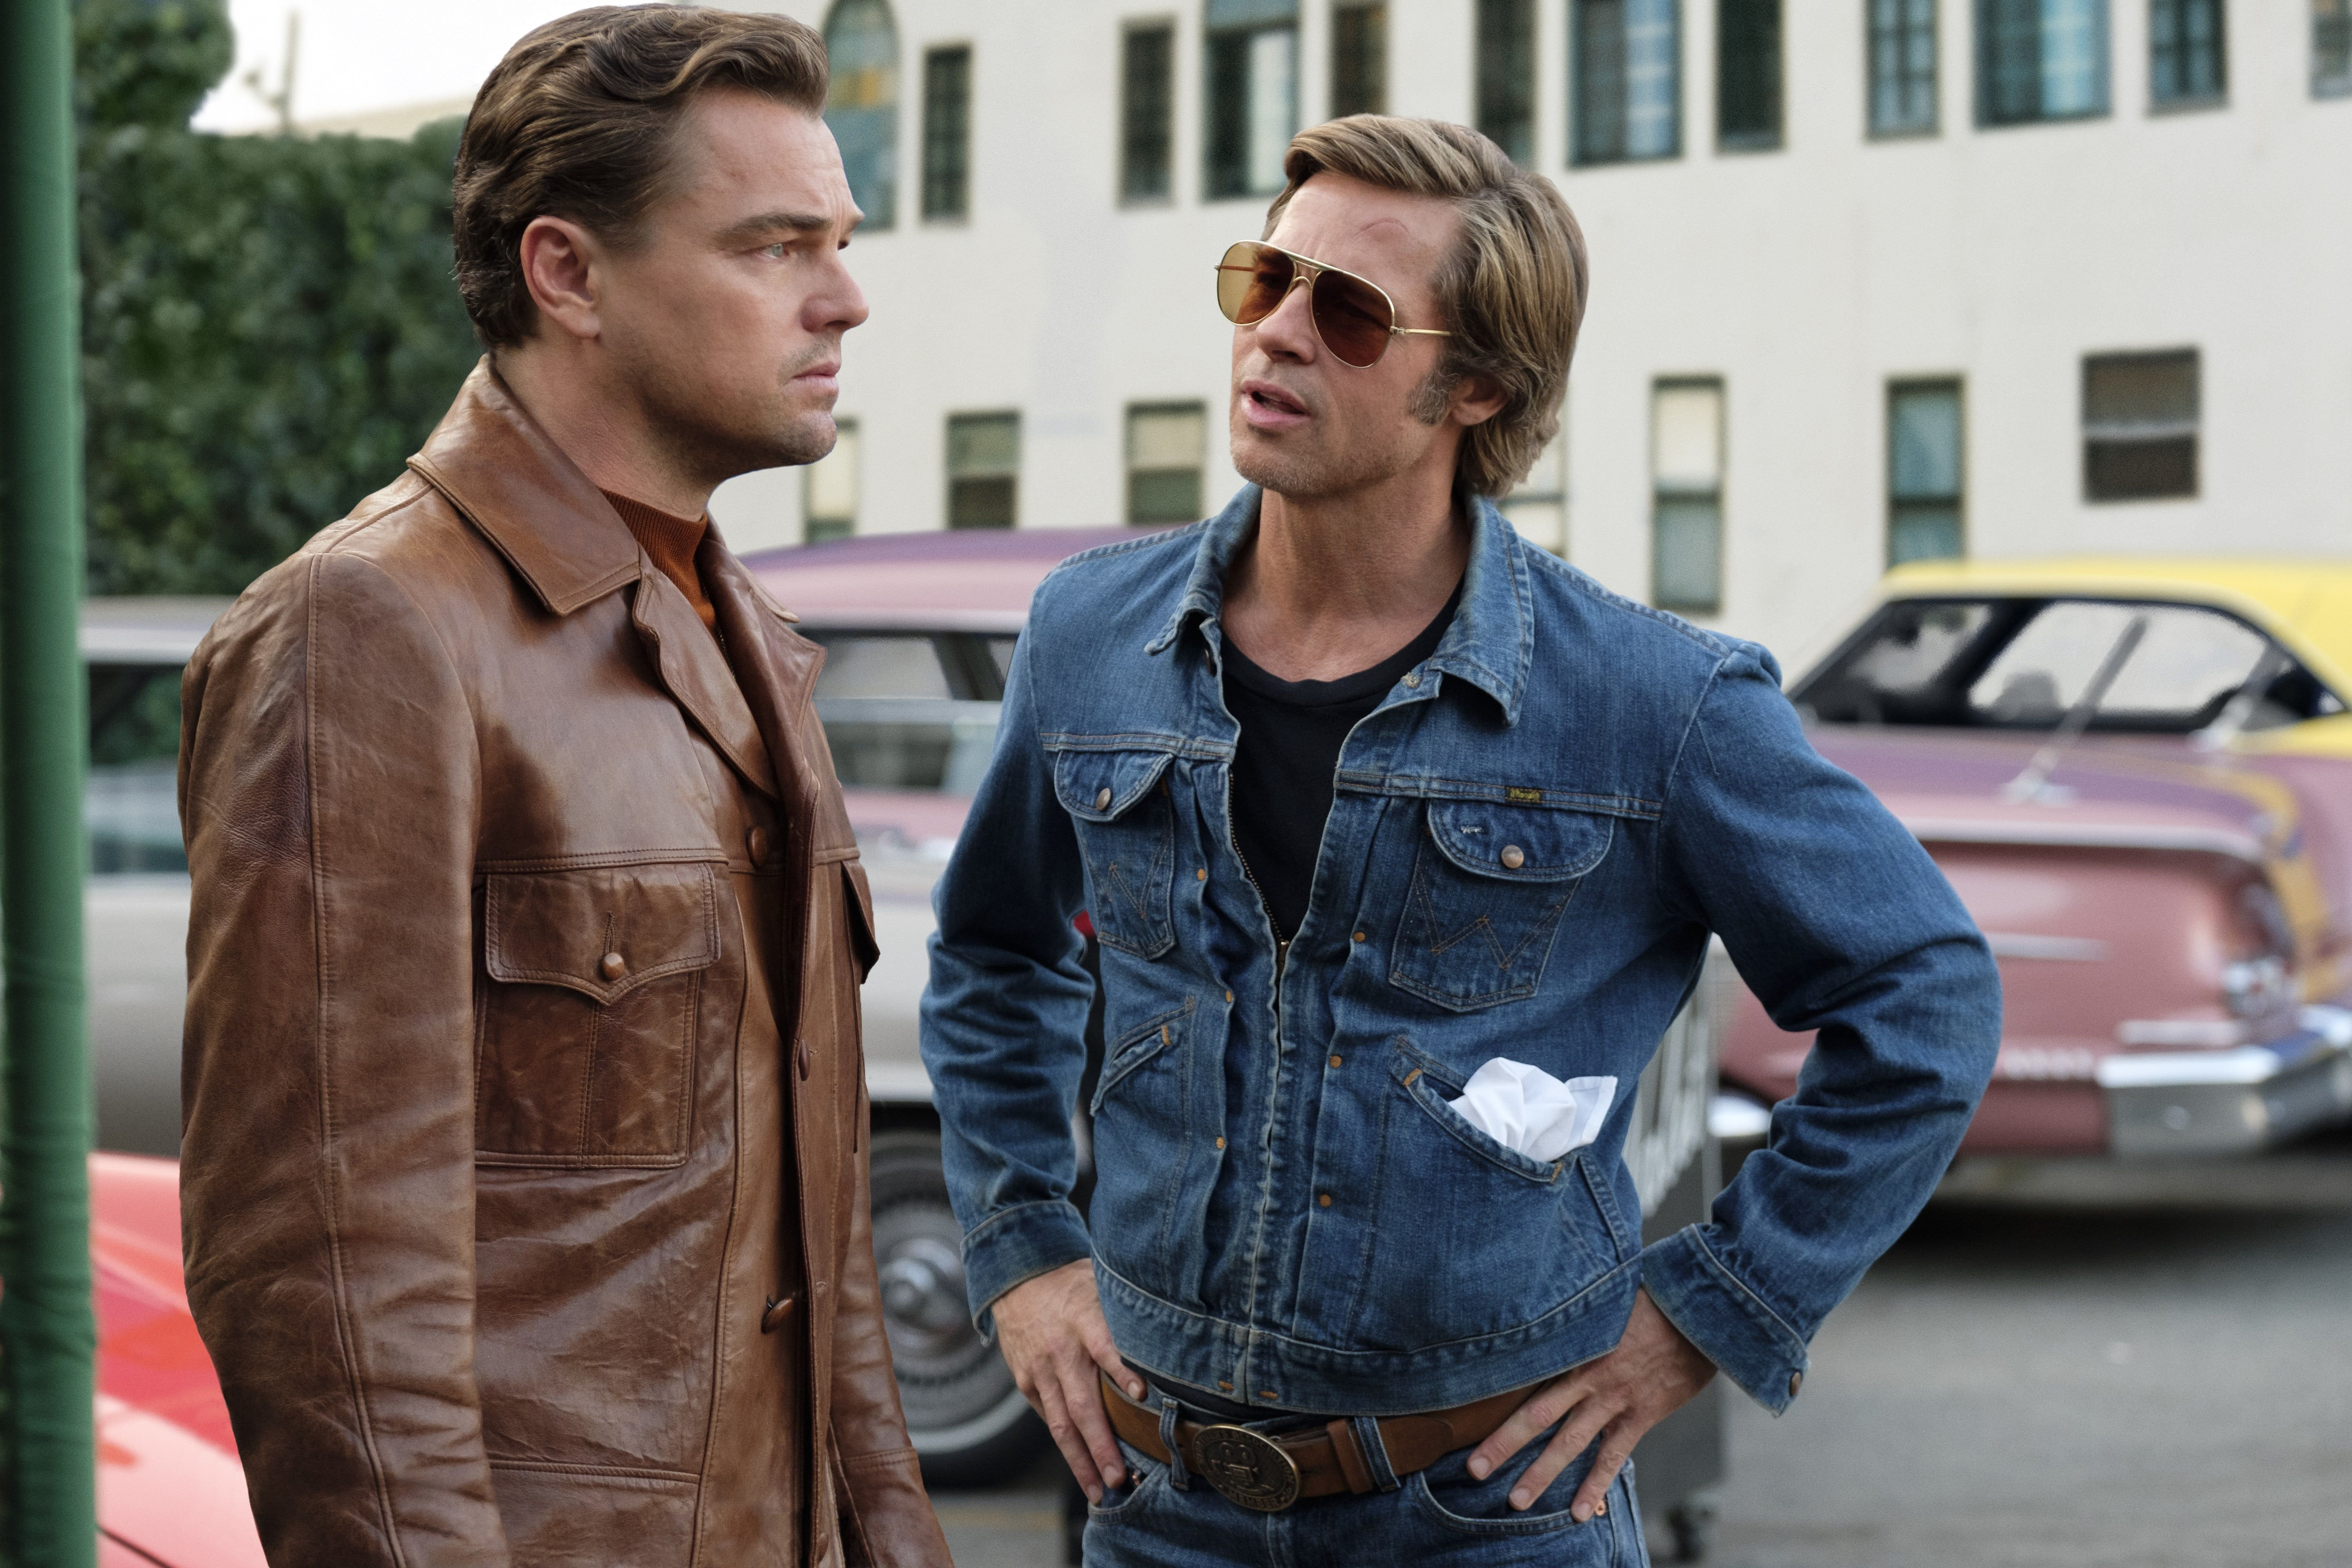 Movie Once Upon A Time In Hollywood Brad Pitt Cliff Booth Leonardo Dicaprio Rick Dalton 5k Wallpaper Hdwallpaper Desktop In 2020 Brad Pitt Hollywood In Hollywood